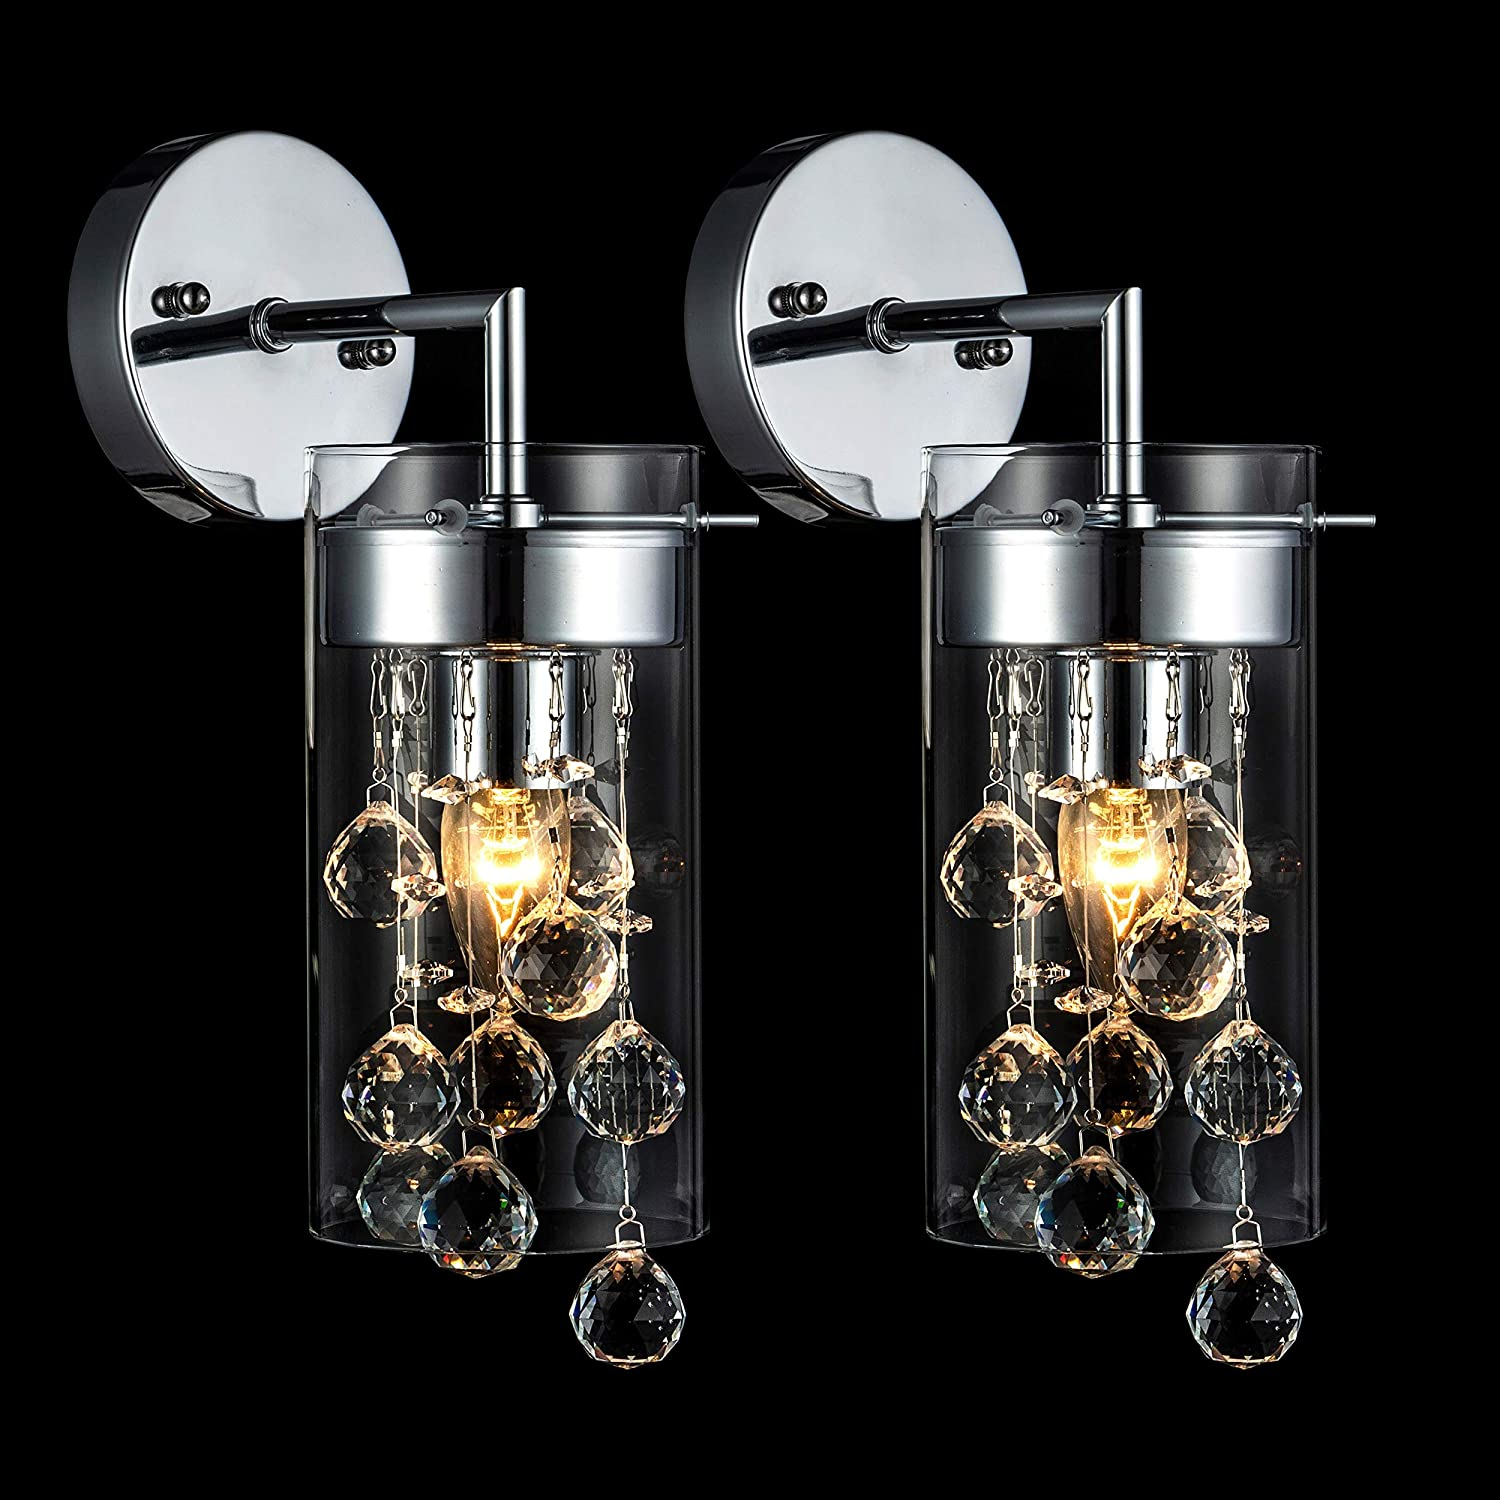 Loclgpm Modern Chrome Metal Crystal Wall Sconce, LED, Decorative Electric Set of 2 Wall Light with Glass Shade and Cord for Dining Room Bedroom Bathroom Living Room Hallway Kitchen Indoor Decor